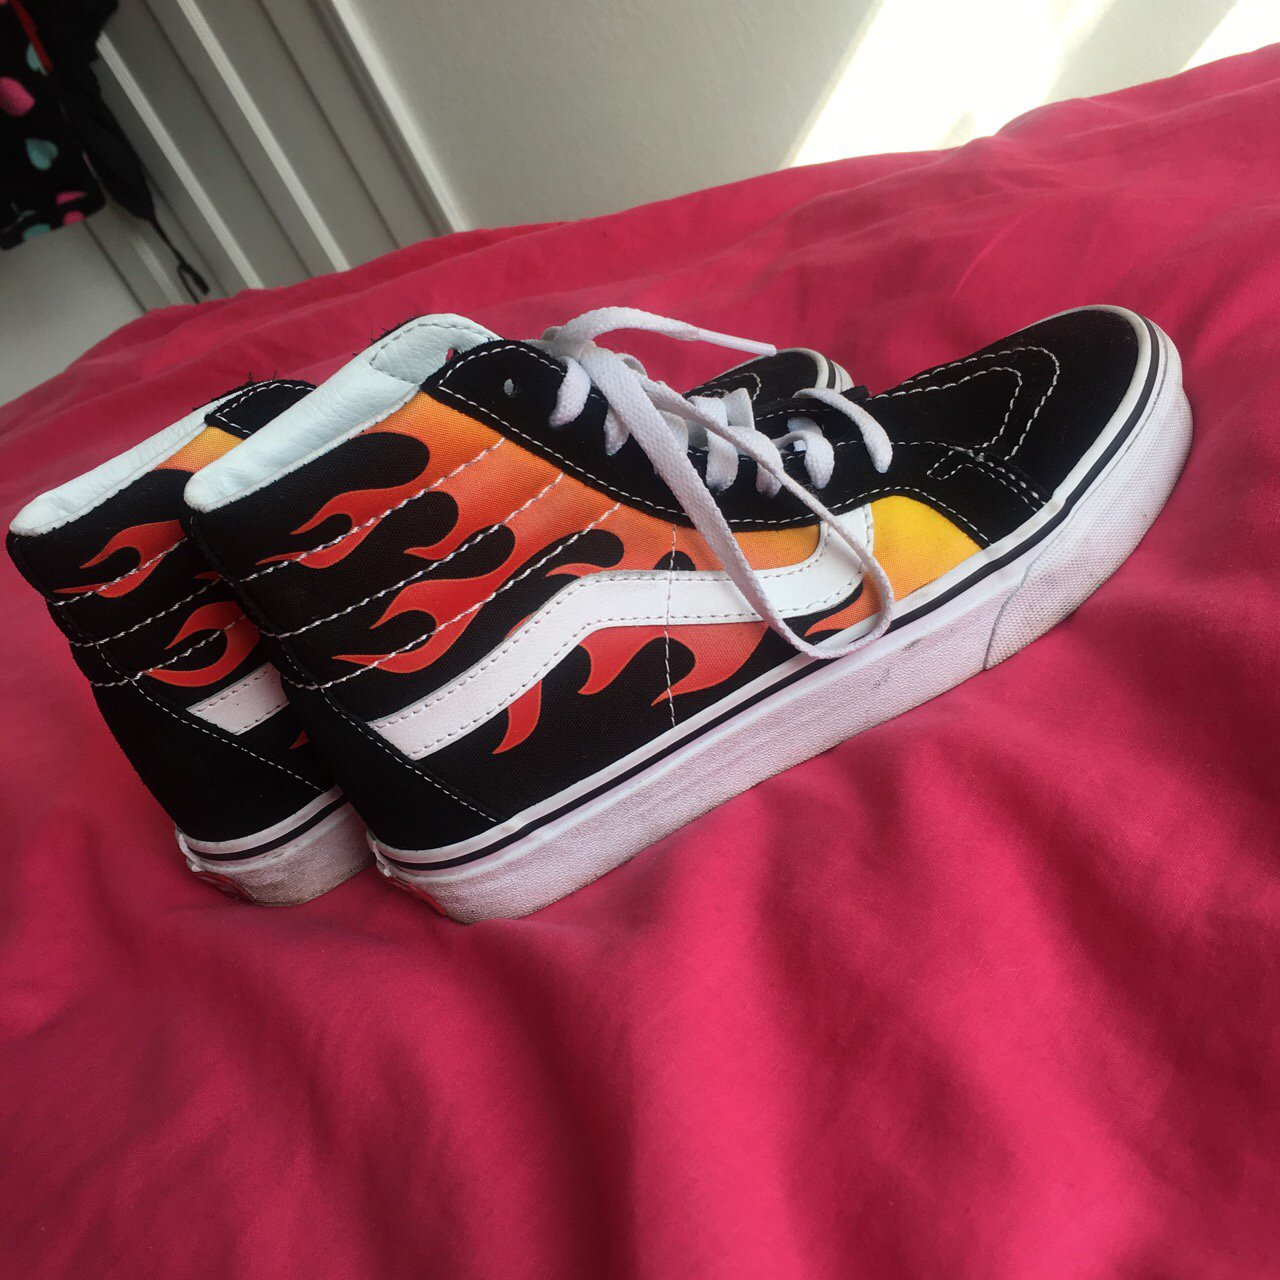 b5a561074647 interest check in my old skool high top flame vans in size 4 - Depop